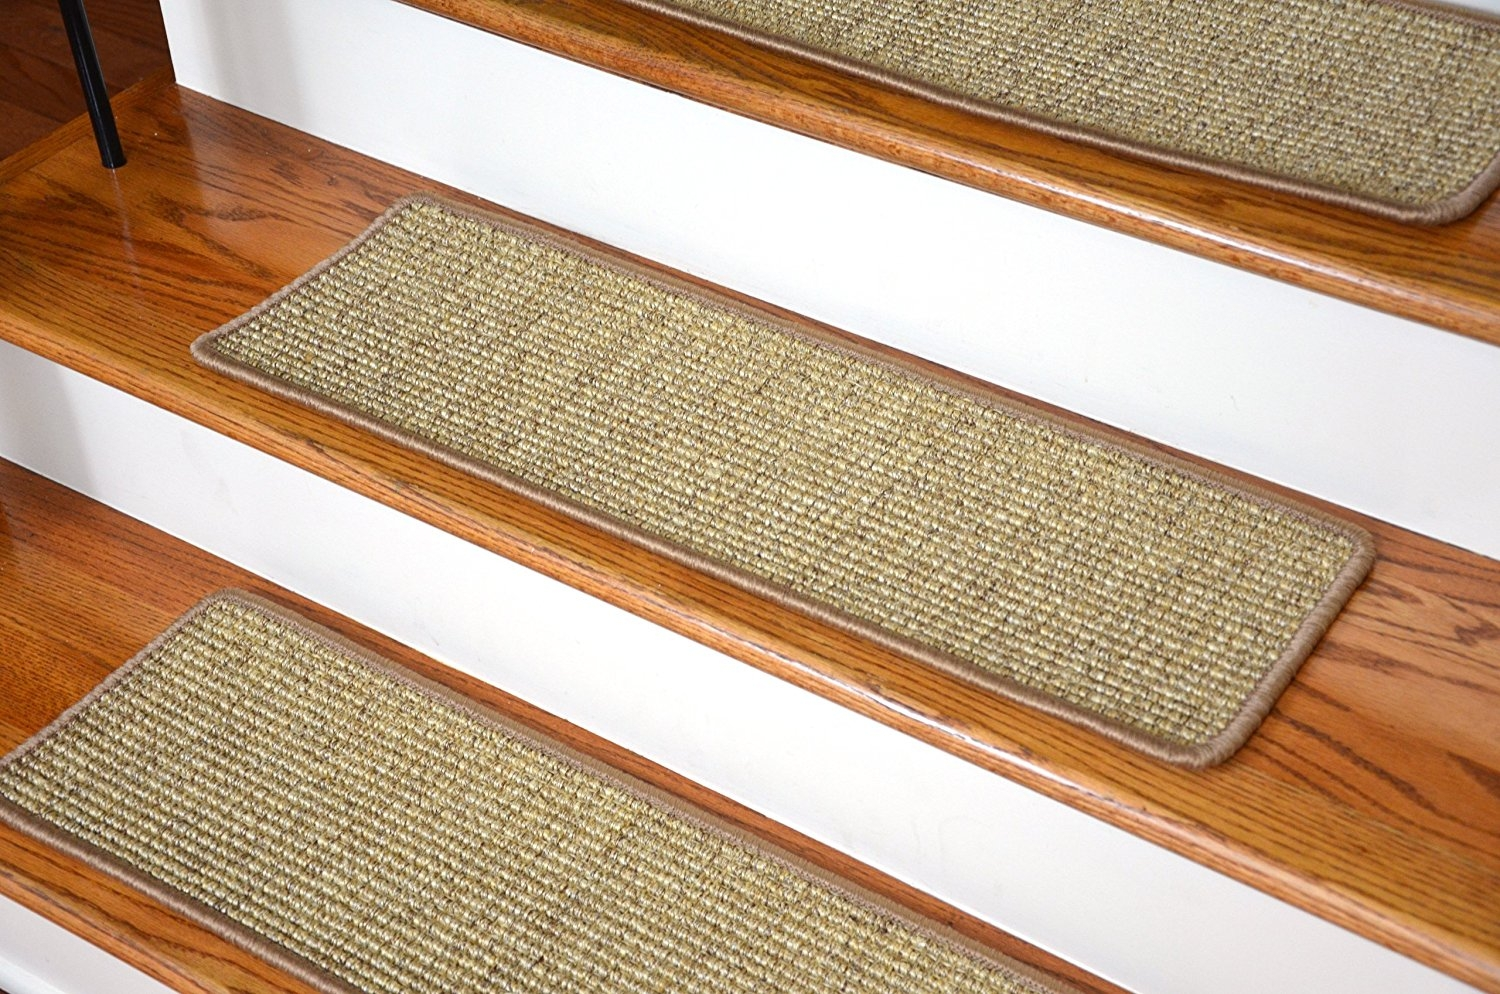 Amazon Dean Attachable Non Skid Sisal Carpet Stair Treads Regarding Non Slip Carpet For Stairs (View 8 of 15)